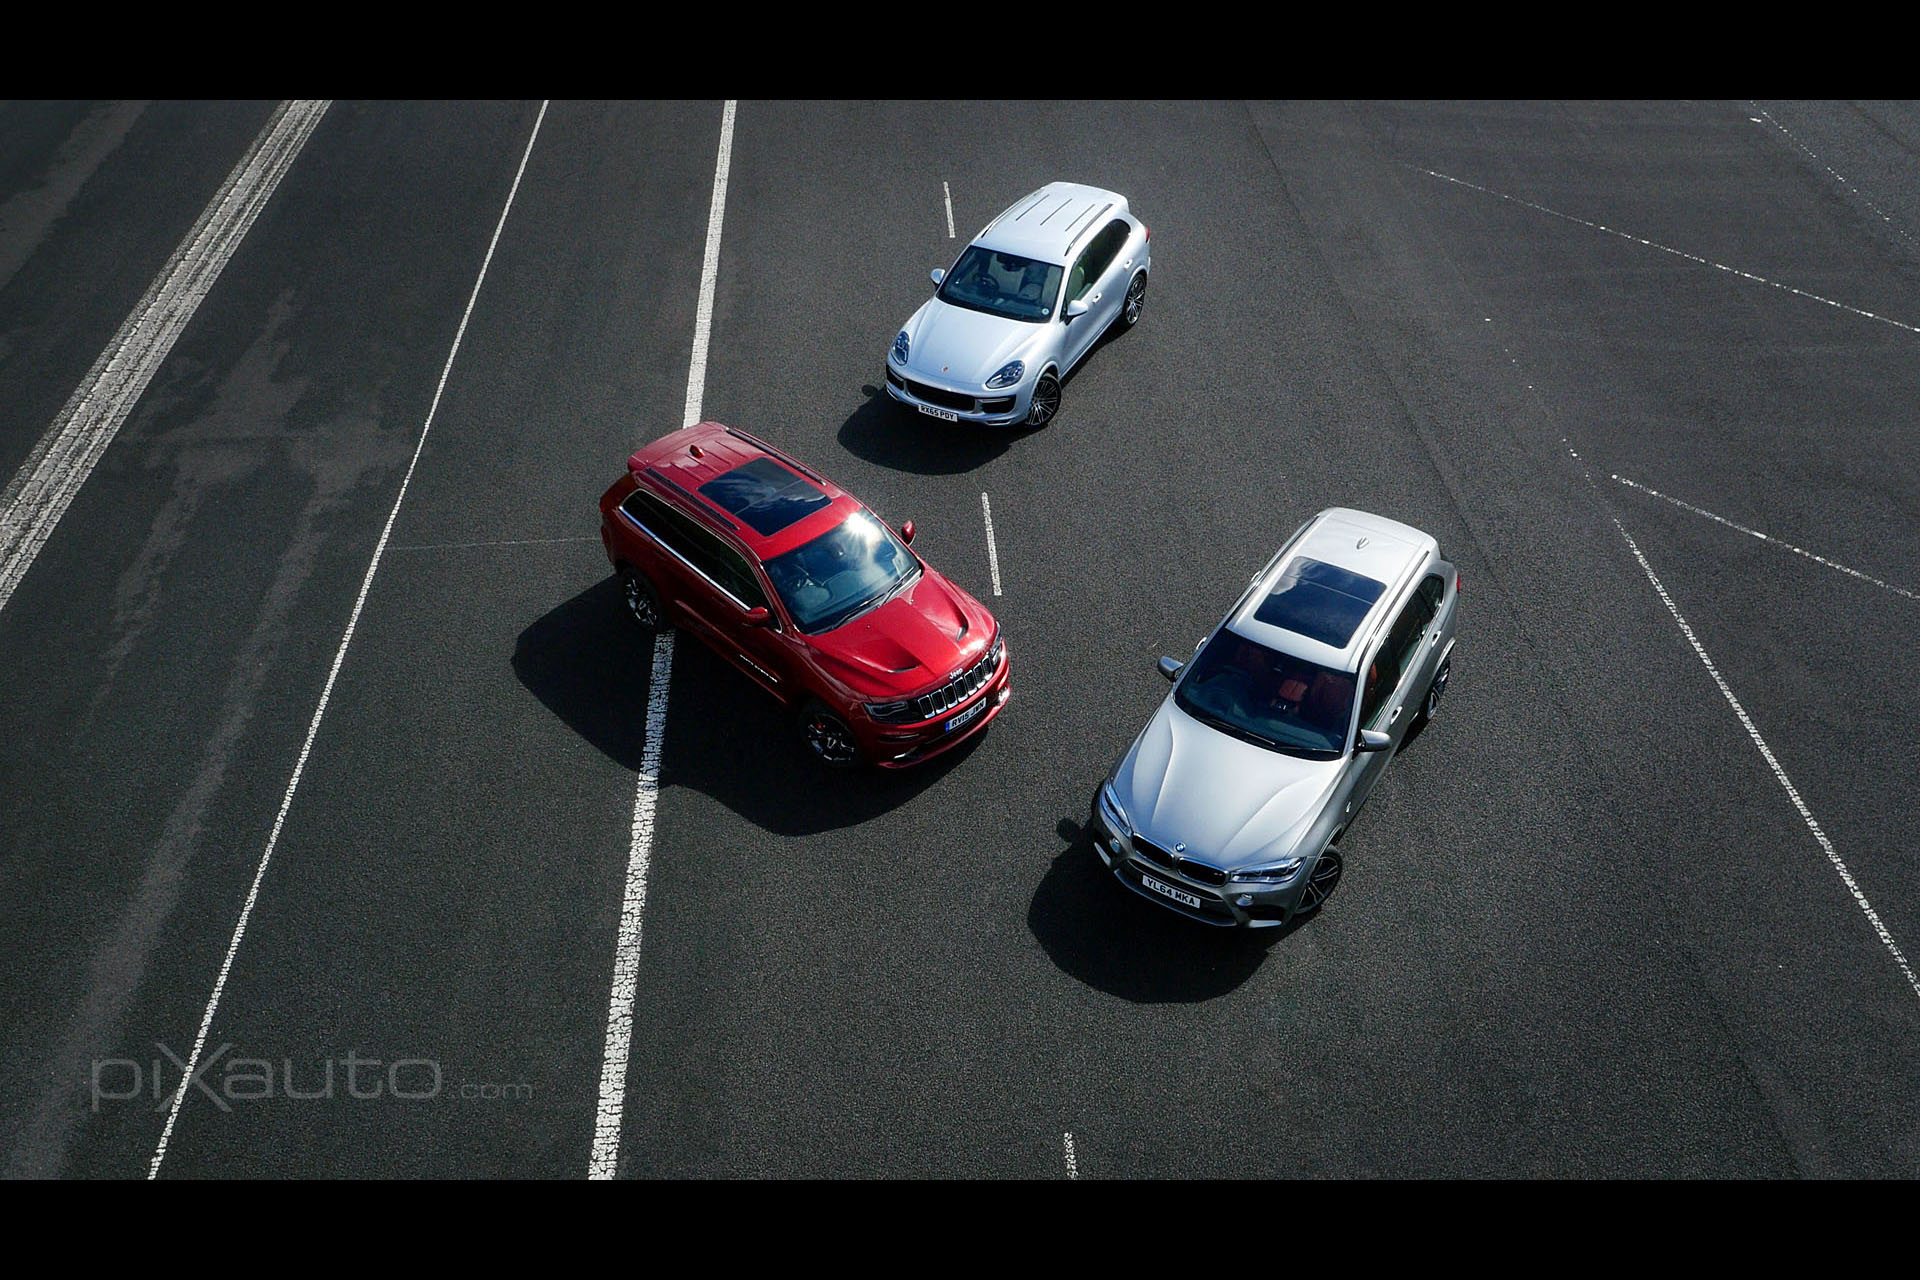 4x4 SUV aerial group shot